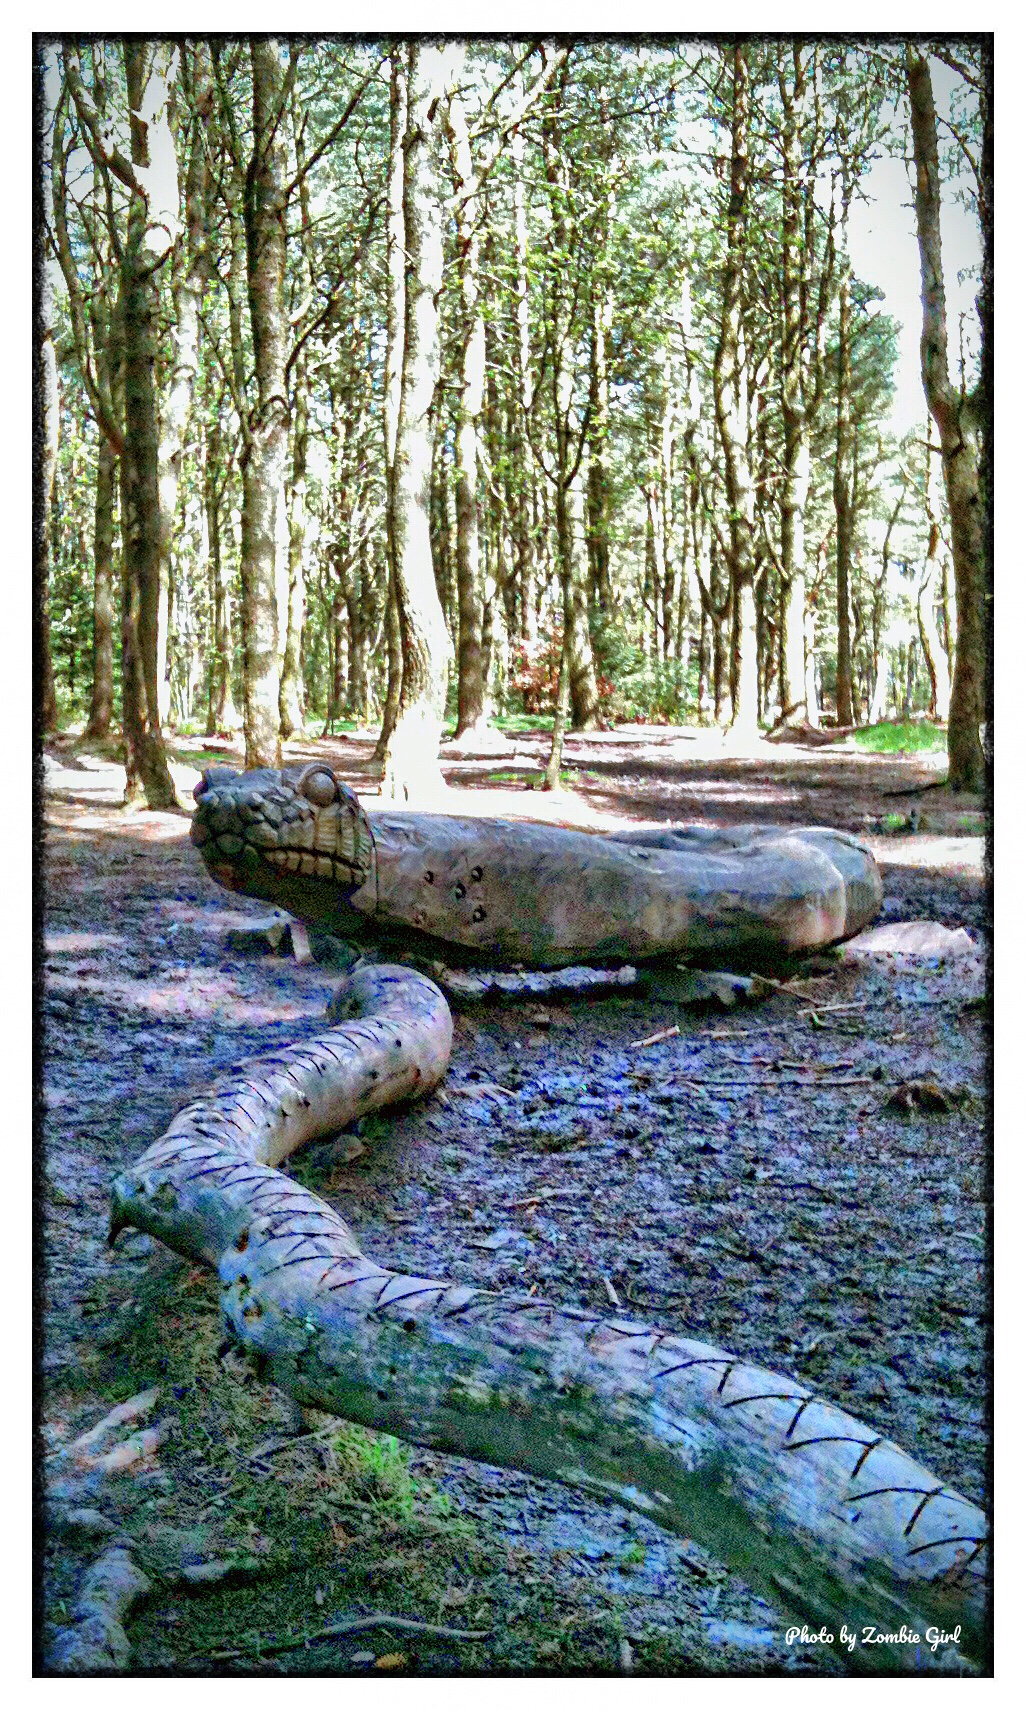 Wooden snake sculpture at Beacon Fell